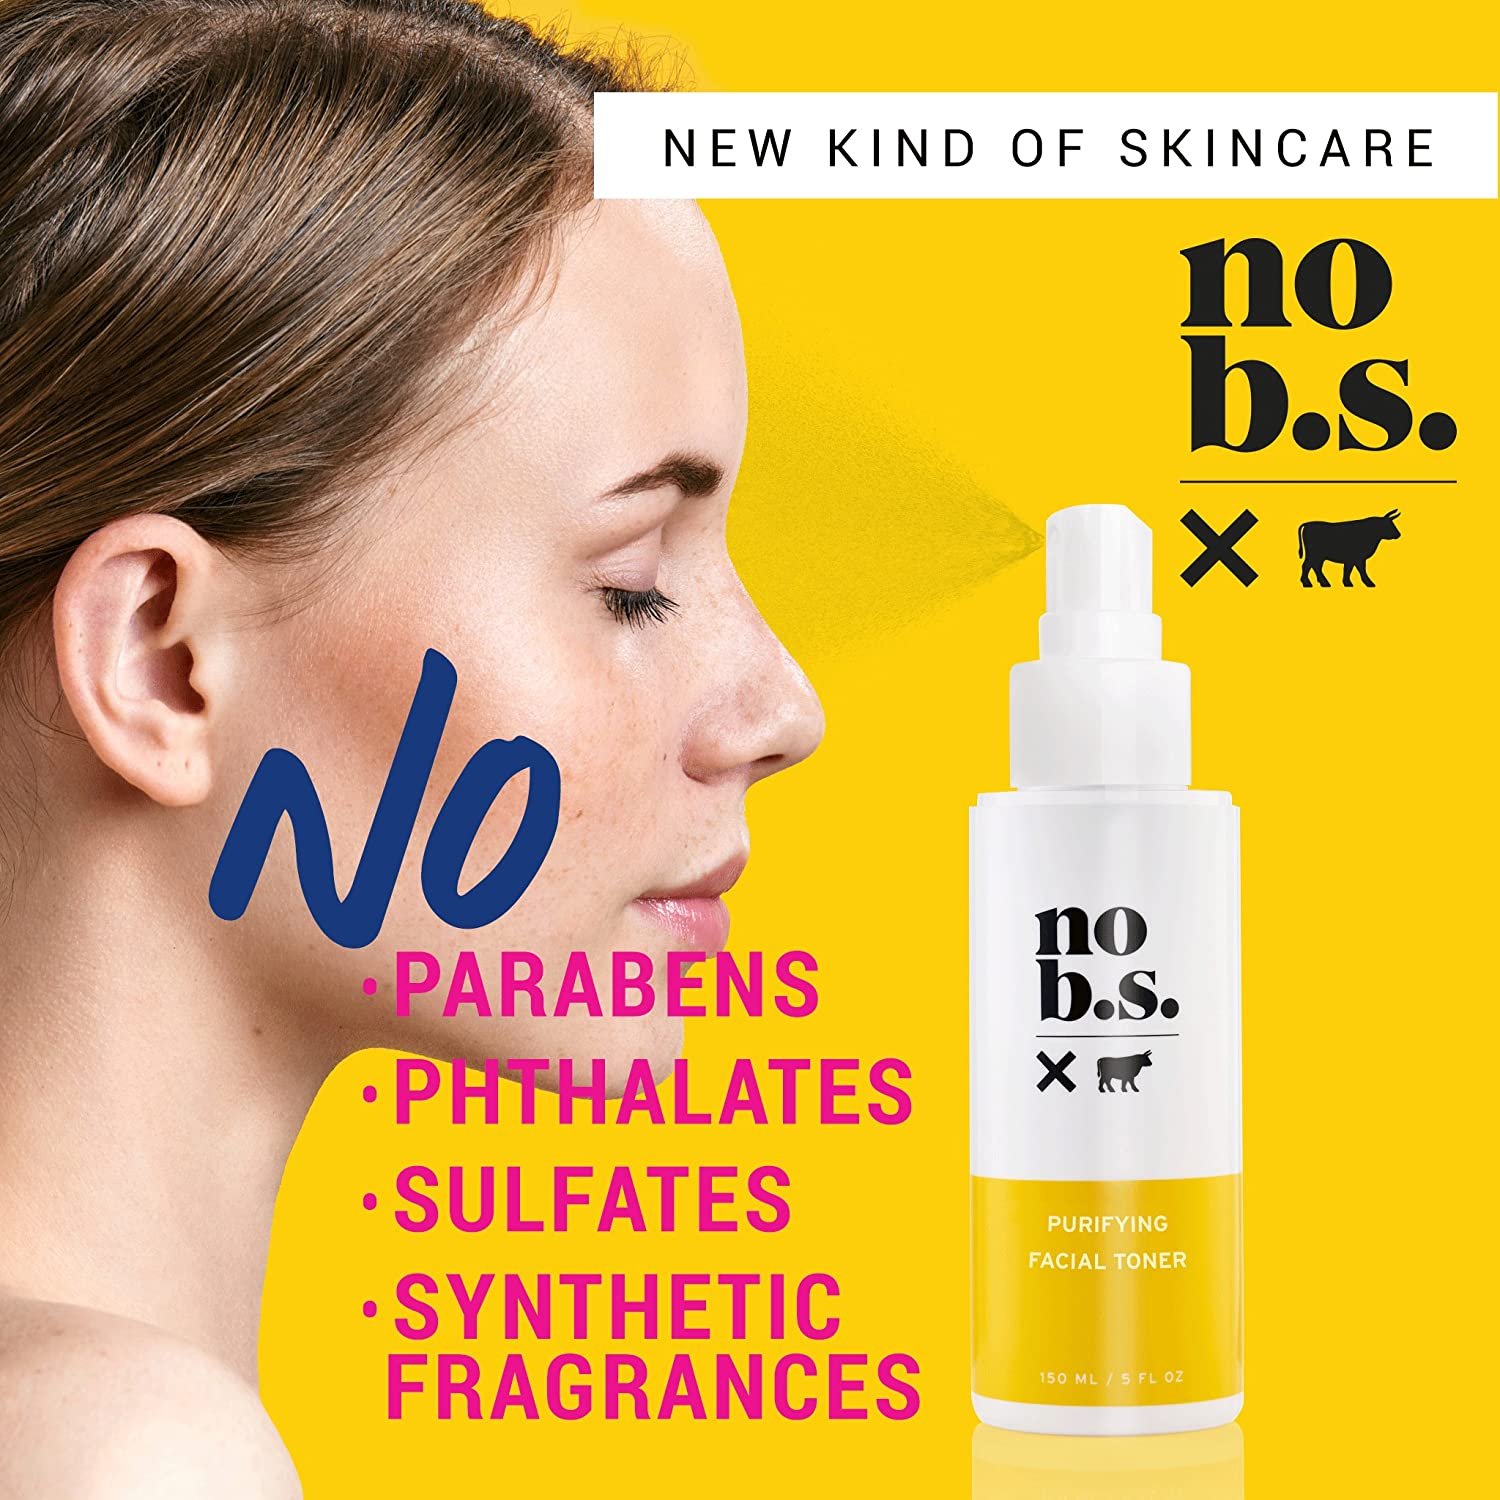 No B.S. Salicylic Acid Face Toner with Lavender, Tea Tree Oil and Witch Hazel – Pore Minimizer